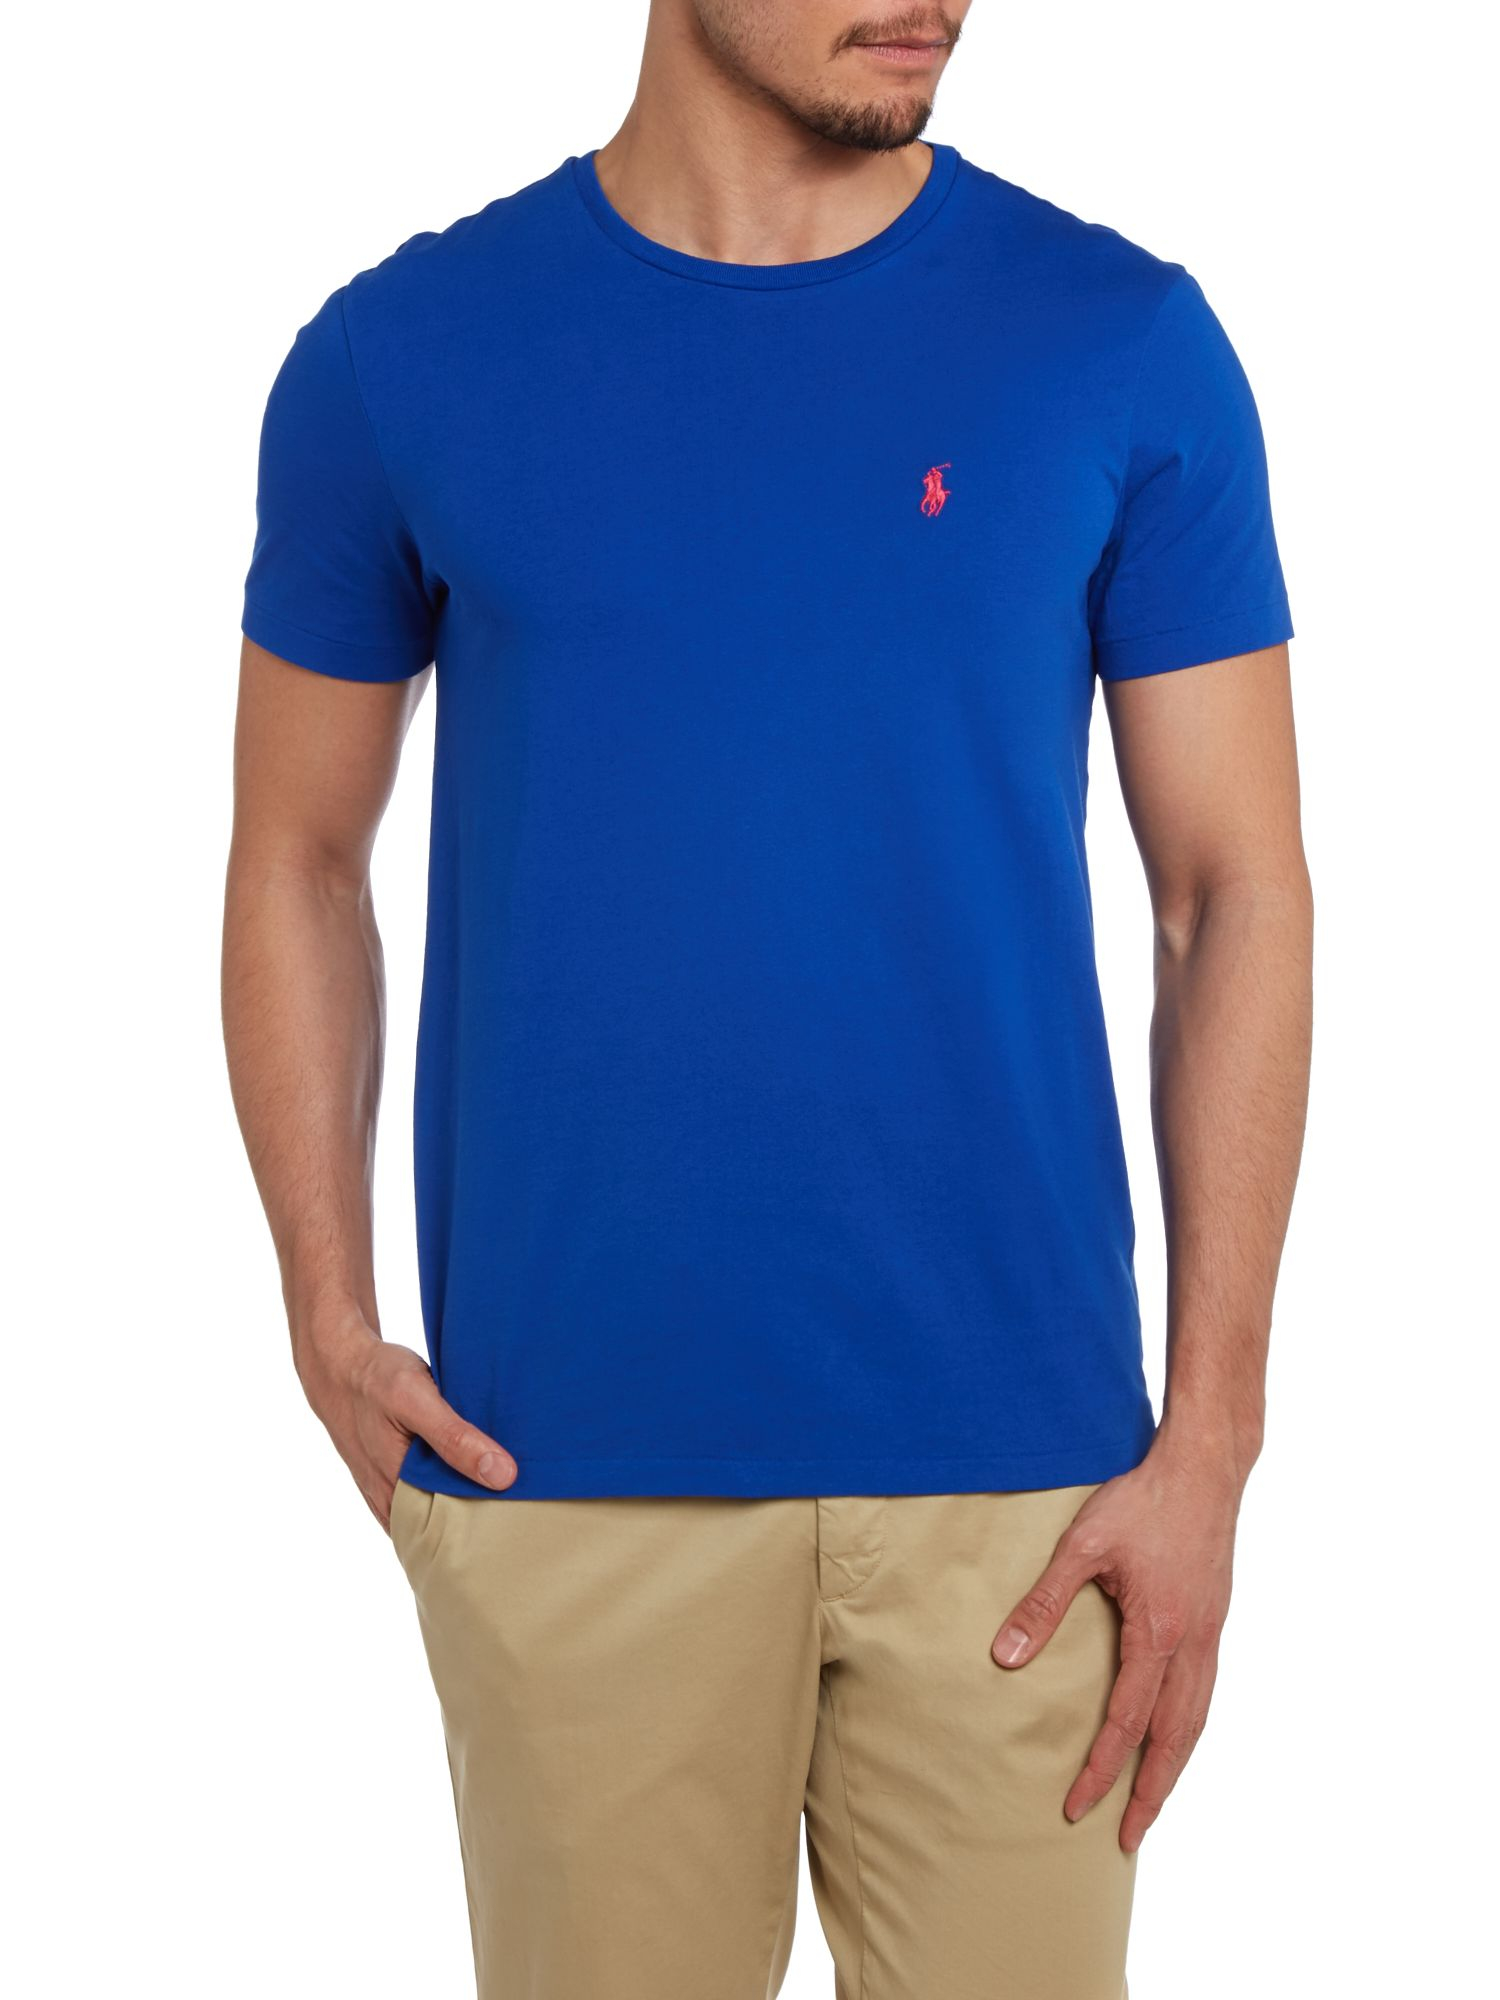 polo ralph lauren classic custom fit tshirt in blue for men lyst. Black Bedroom Furniture Sets. Home Design Ideas